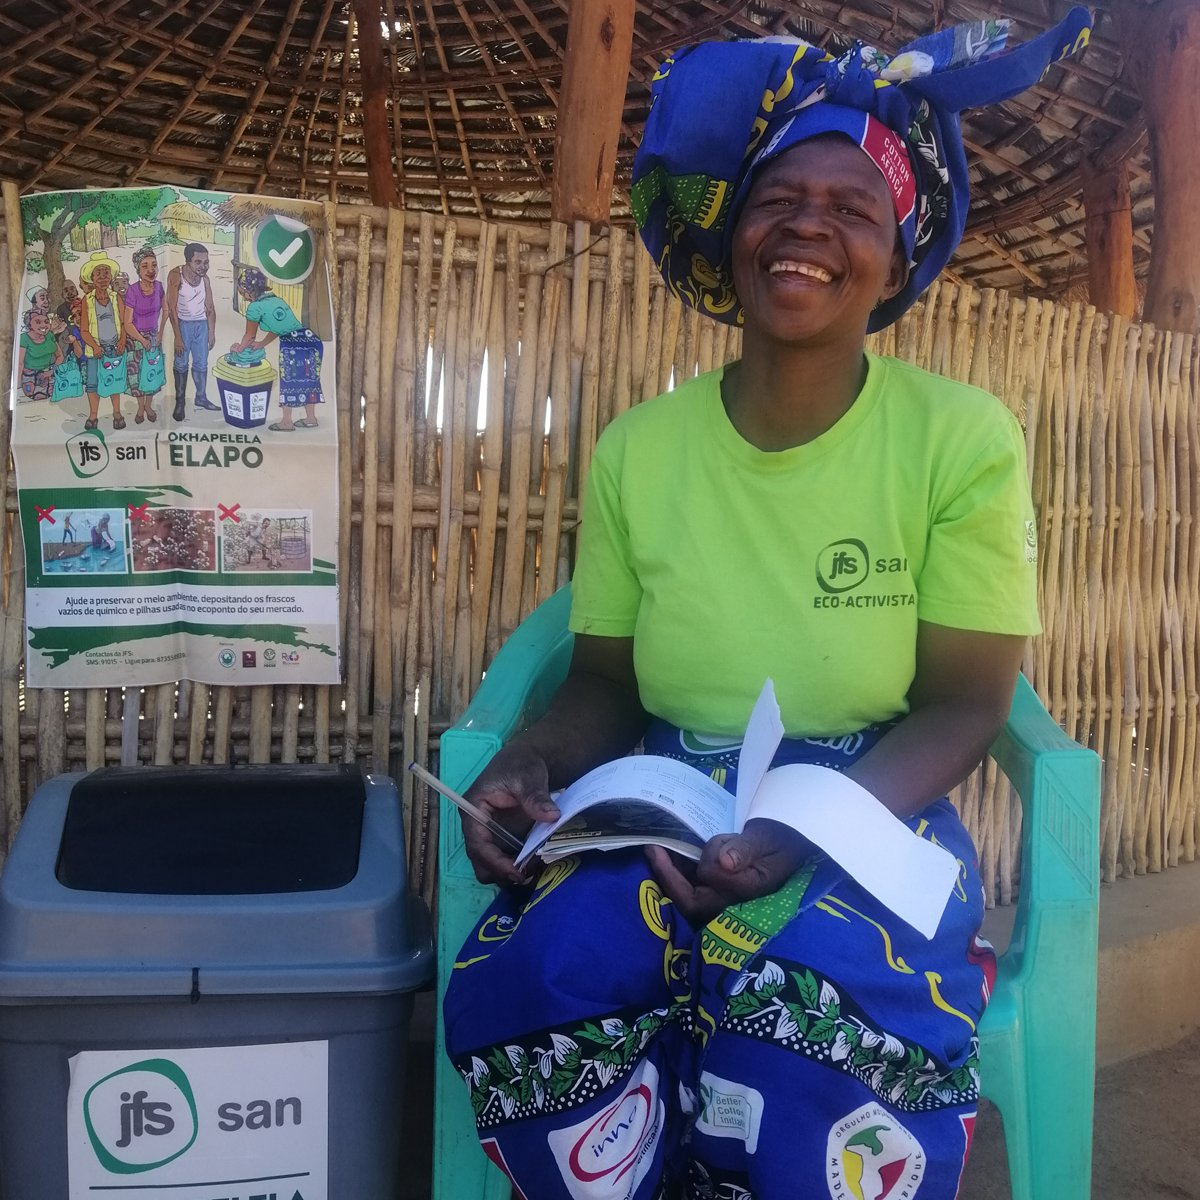 CmiA and the cotton company SAN-JFS developed a #recycling project in #Mozambique which supports #women, so called eco-activists. We spoke w/ Justina, one of the eco-activists, about her great work:  #sustainble #sustainability